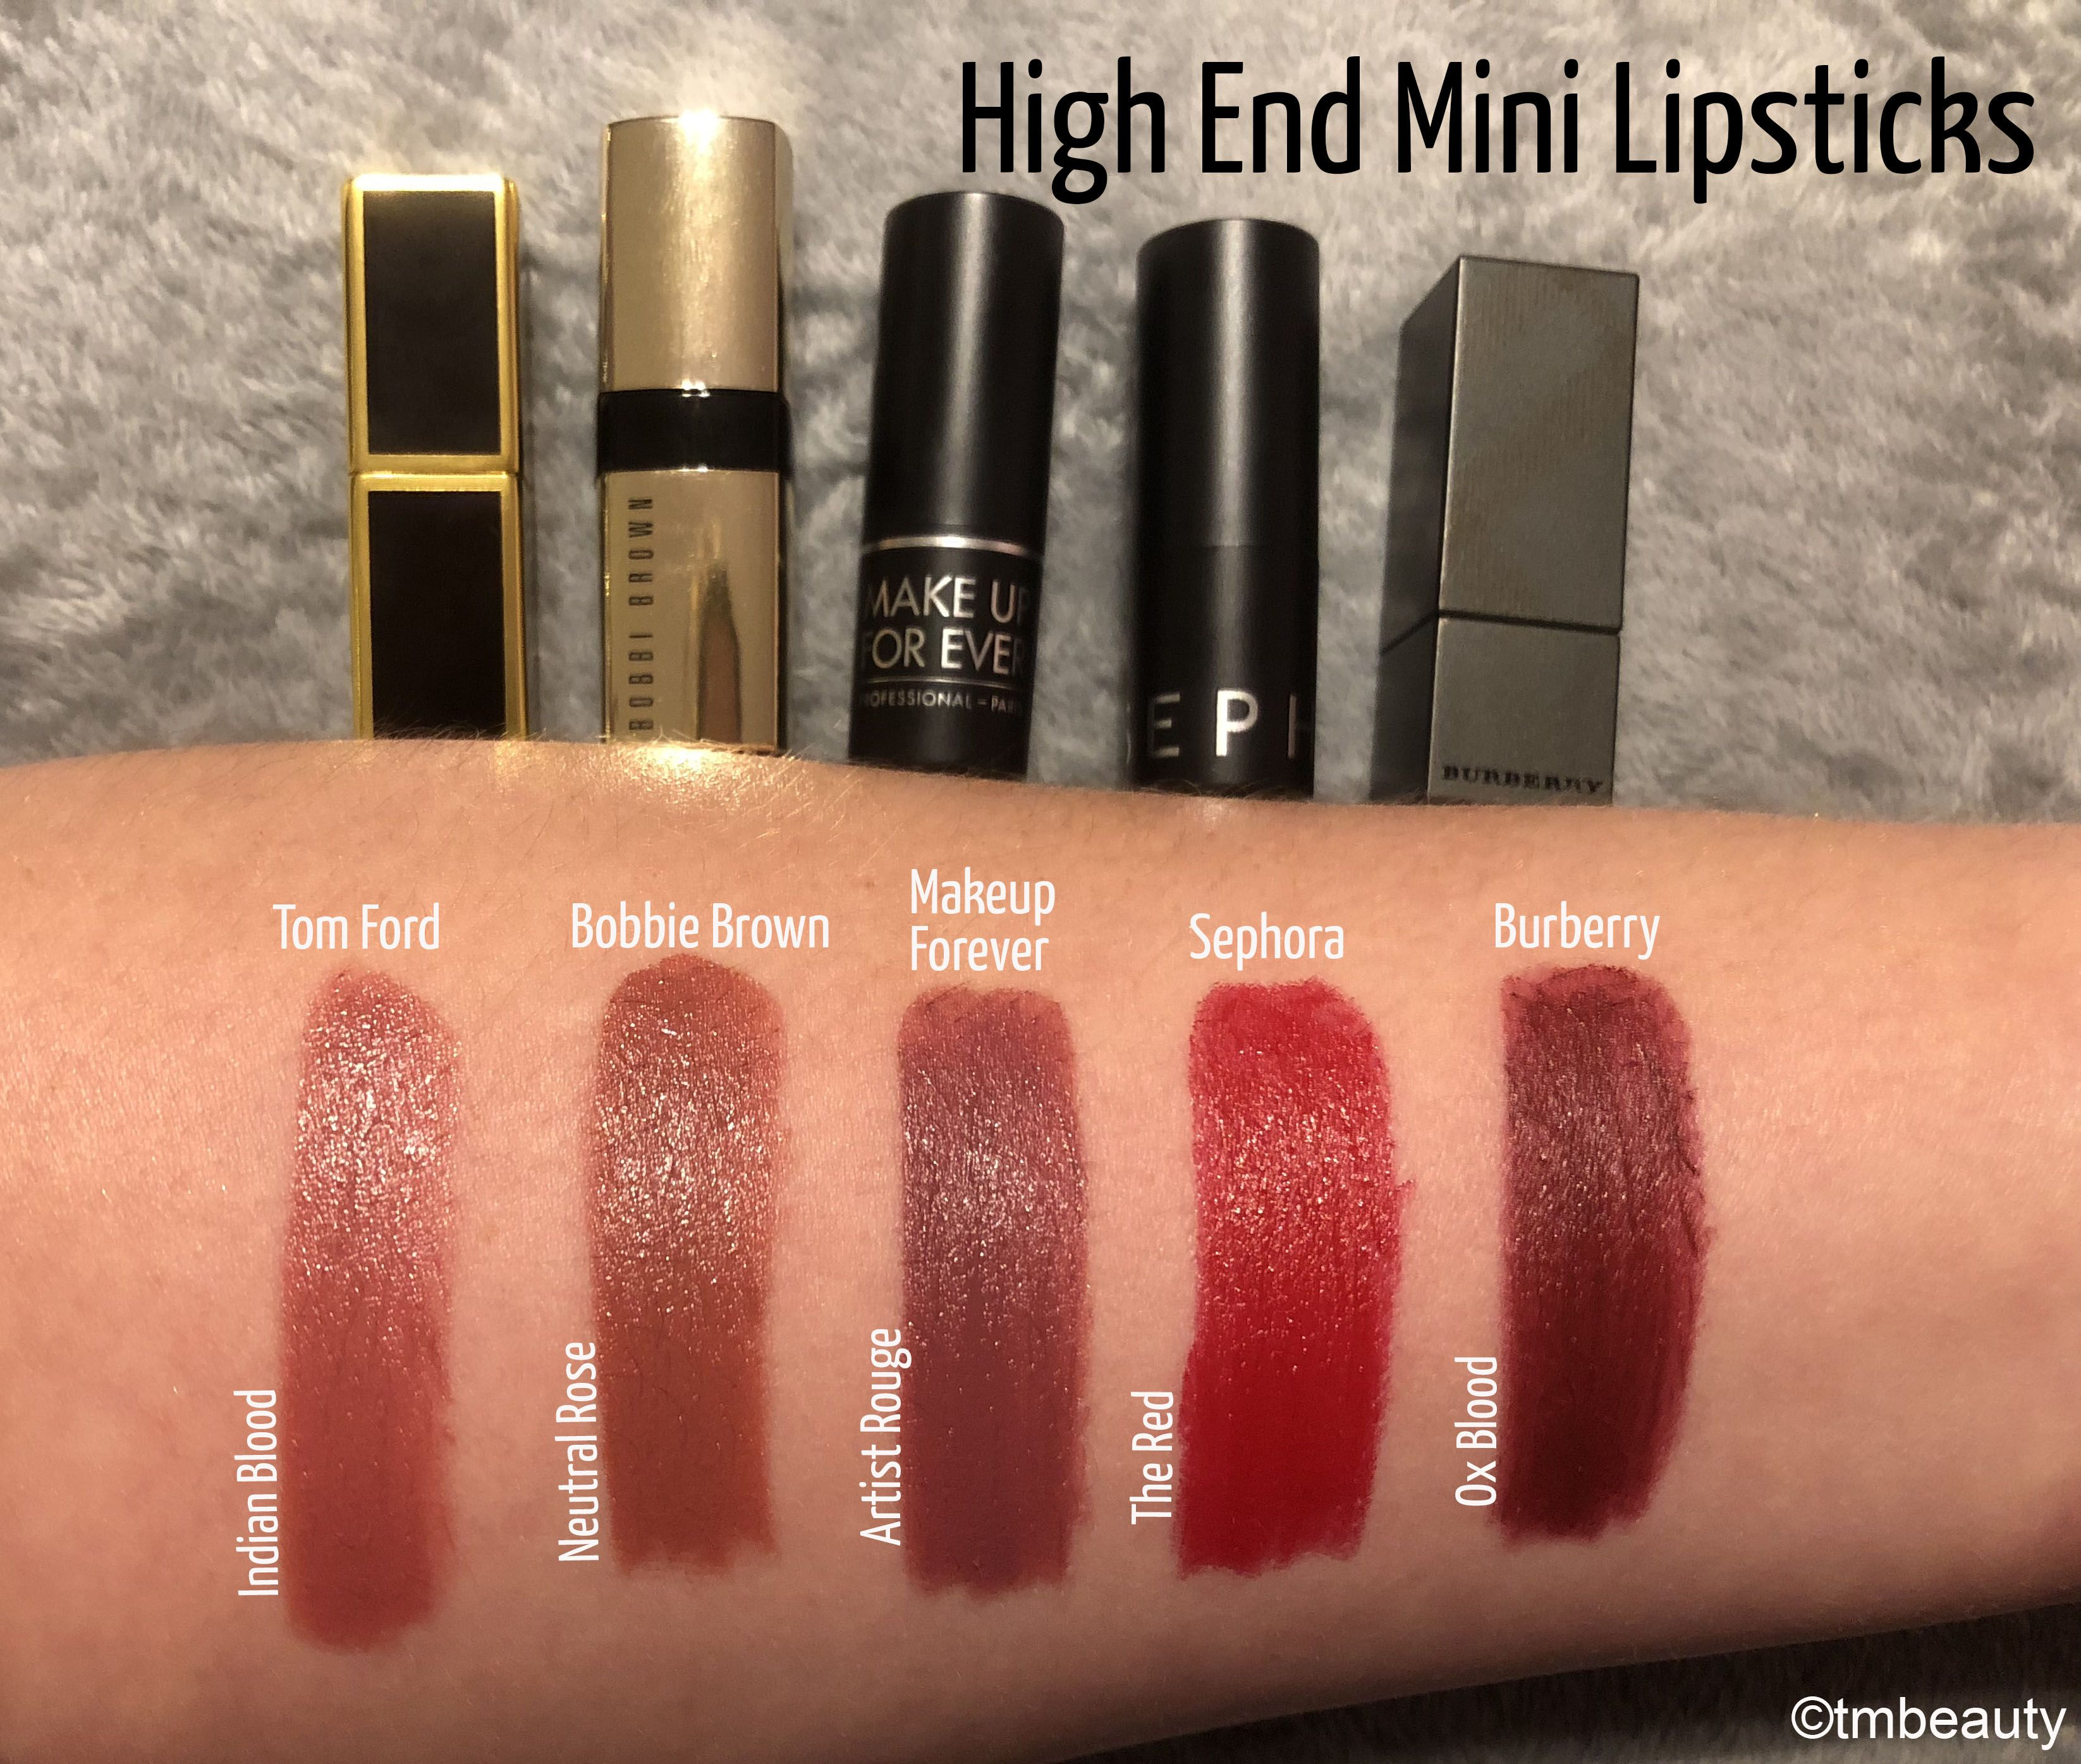 High End Mini Lipstick Swatches Makeup swatches